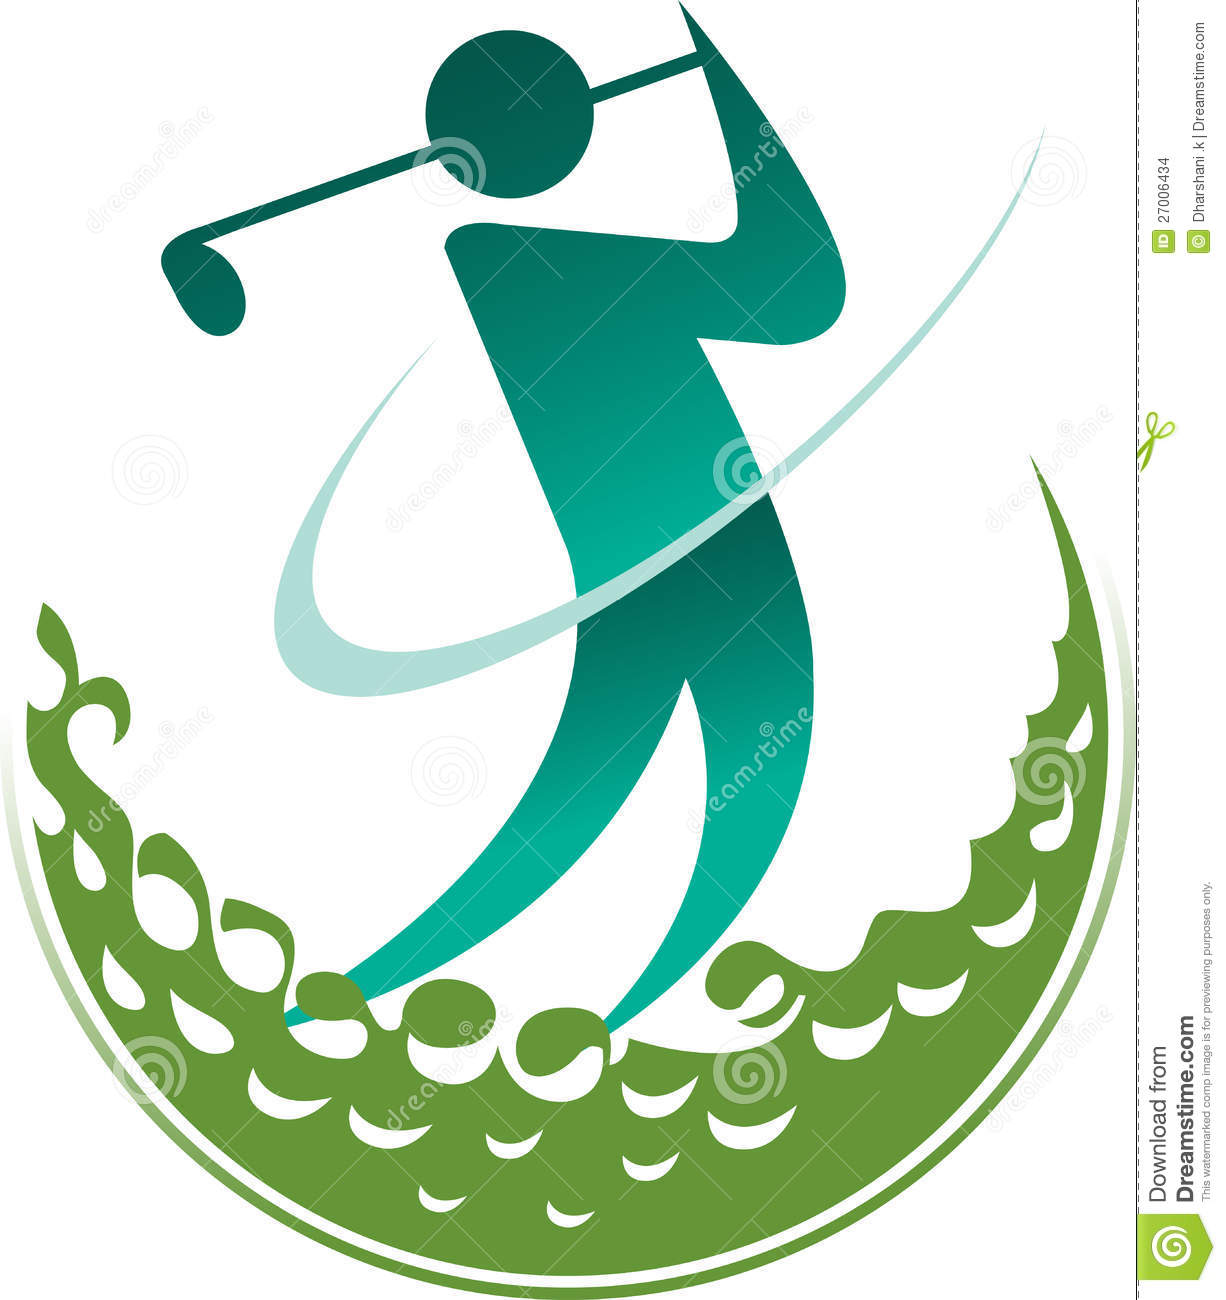 Golfing clipart golf tournament. Free download best on